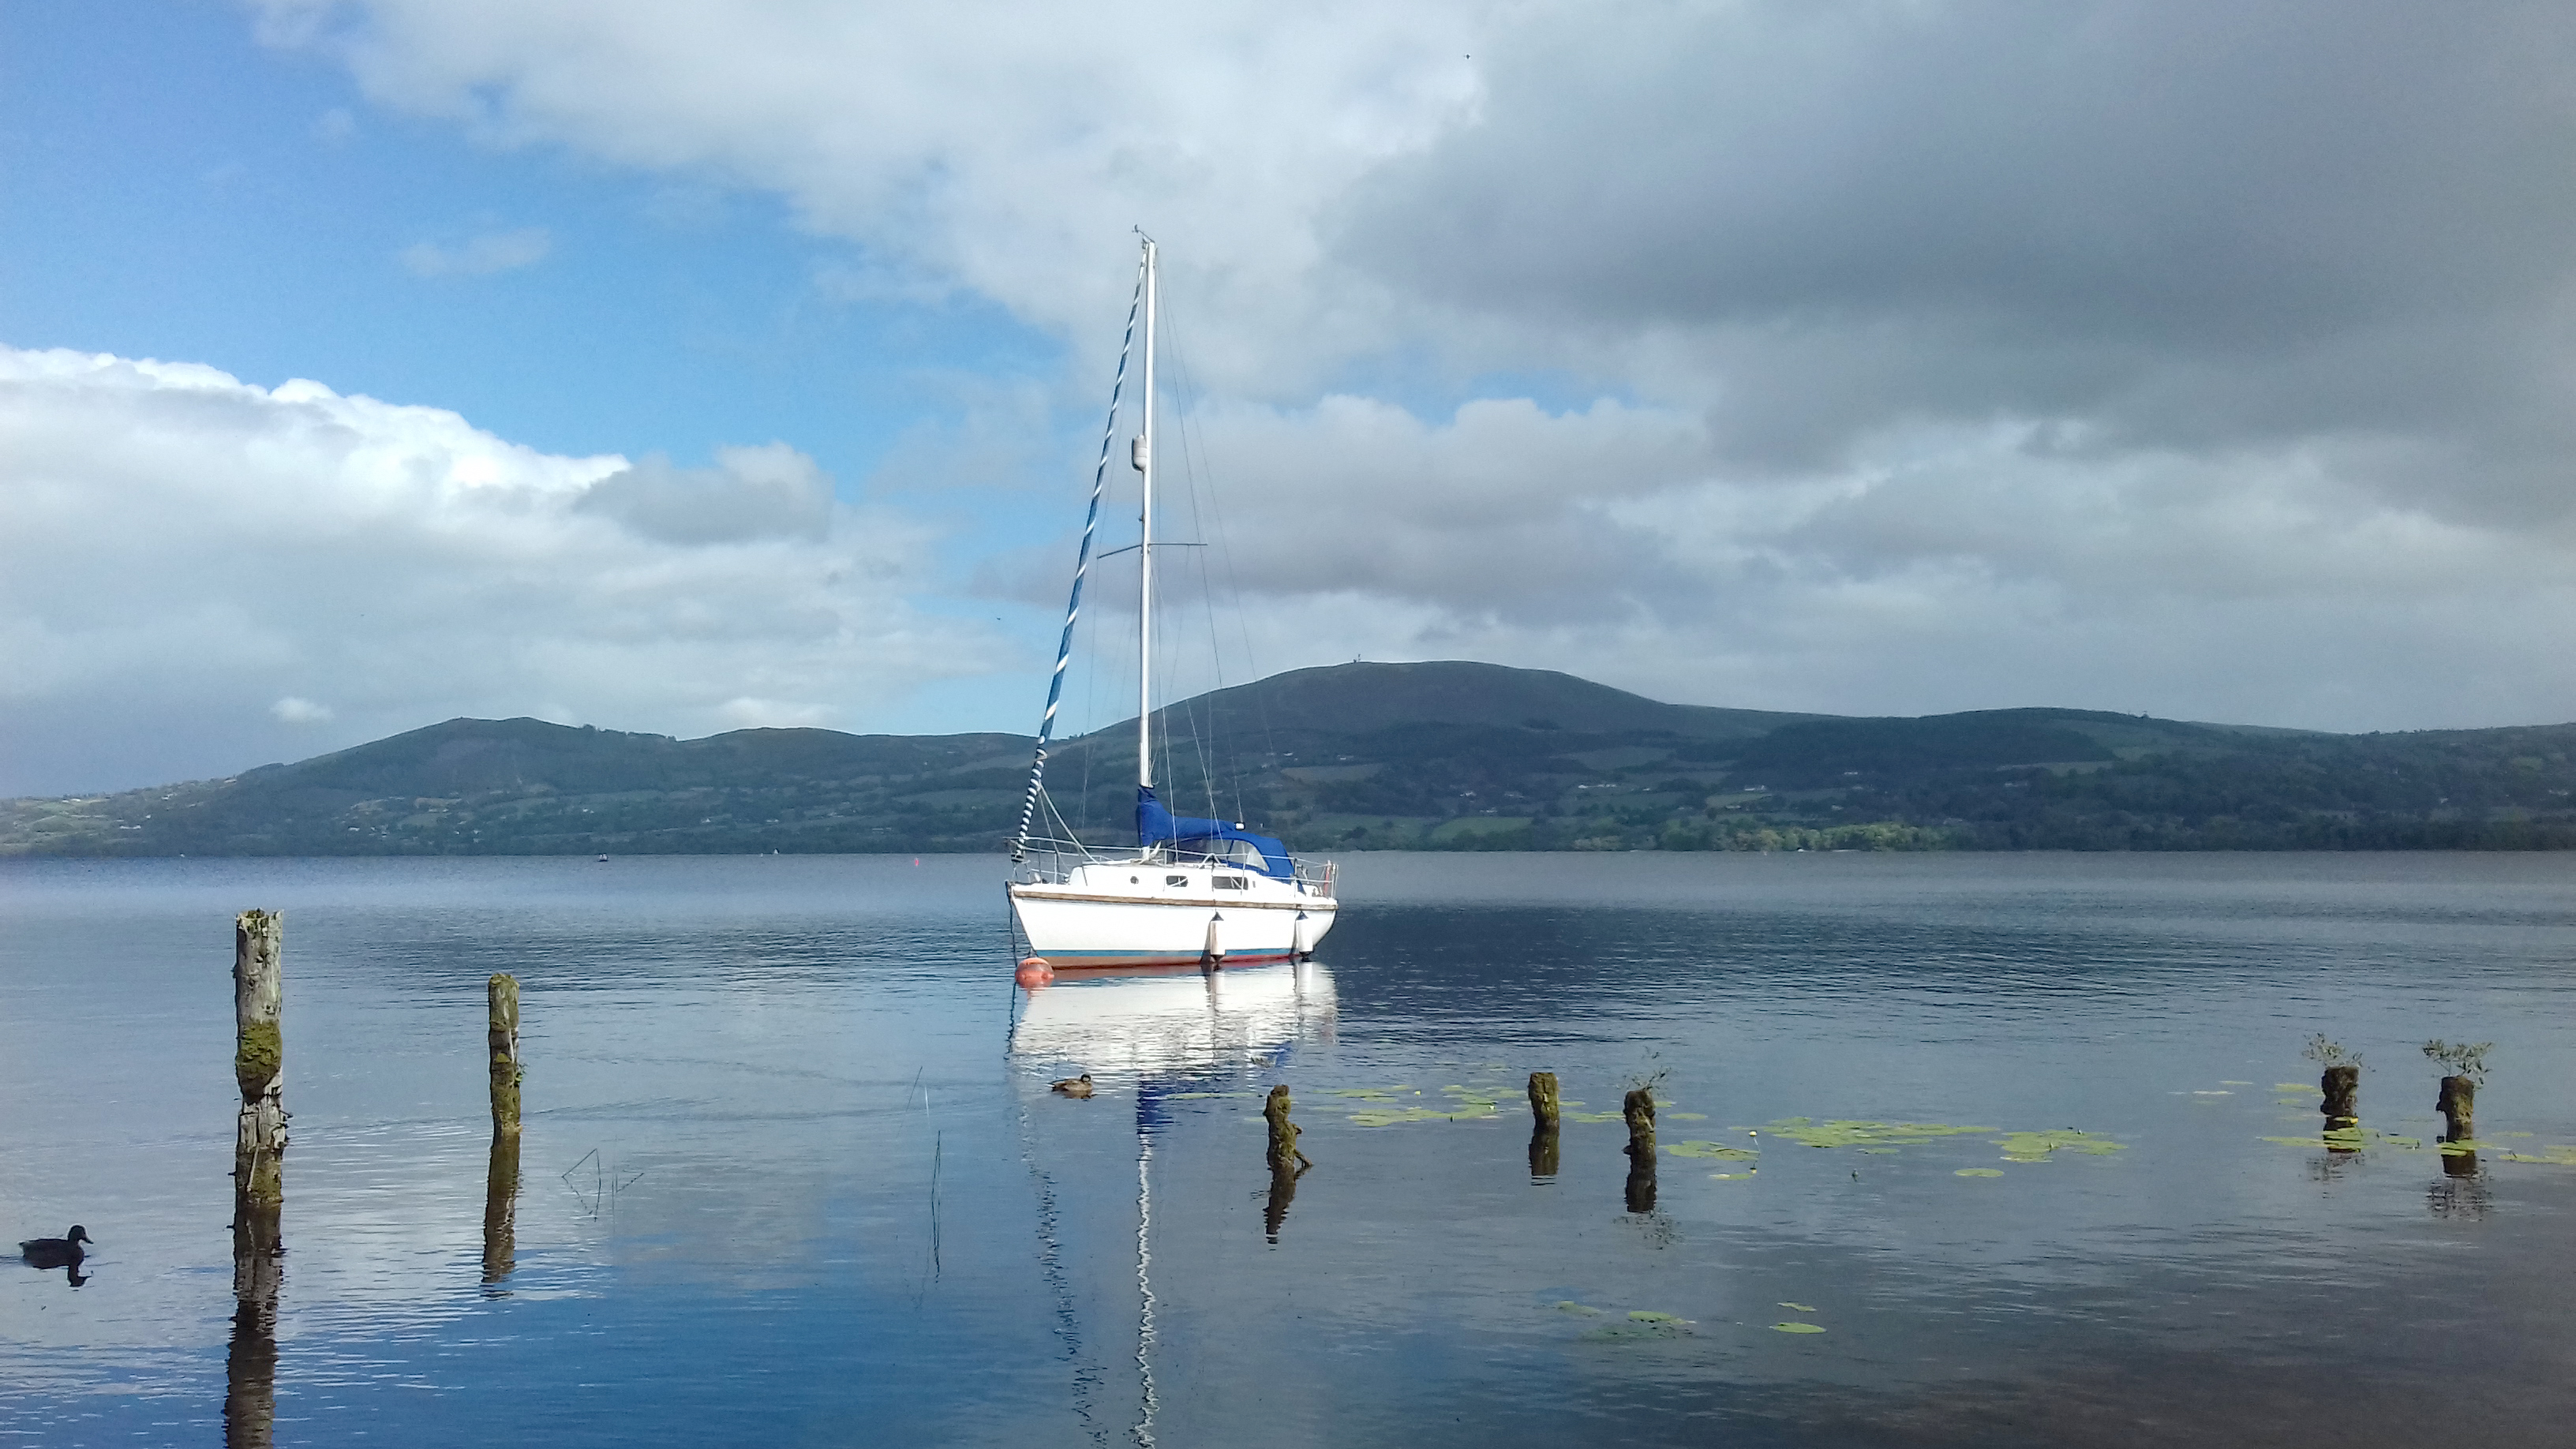 Lough Derg with a lone sail boat and a soft Arra Mountains in the background